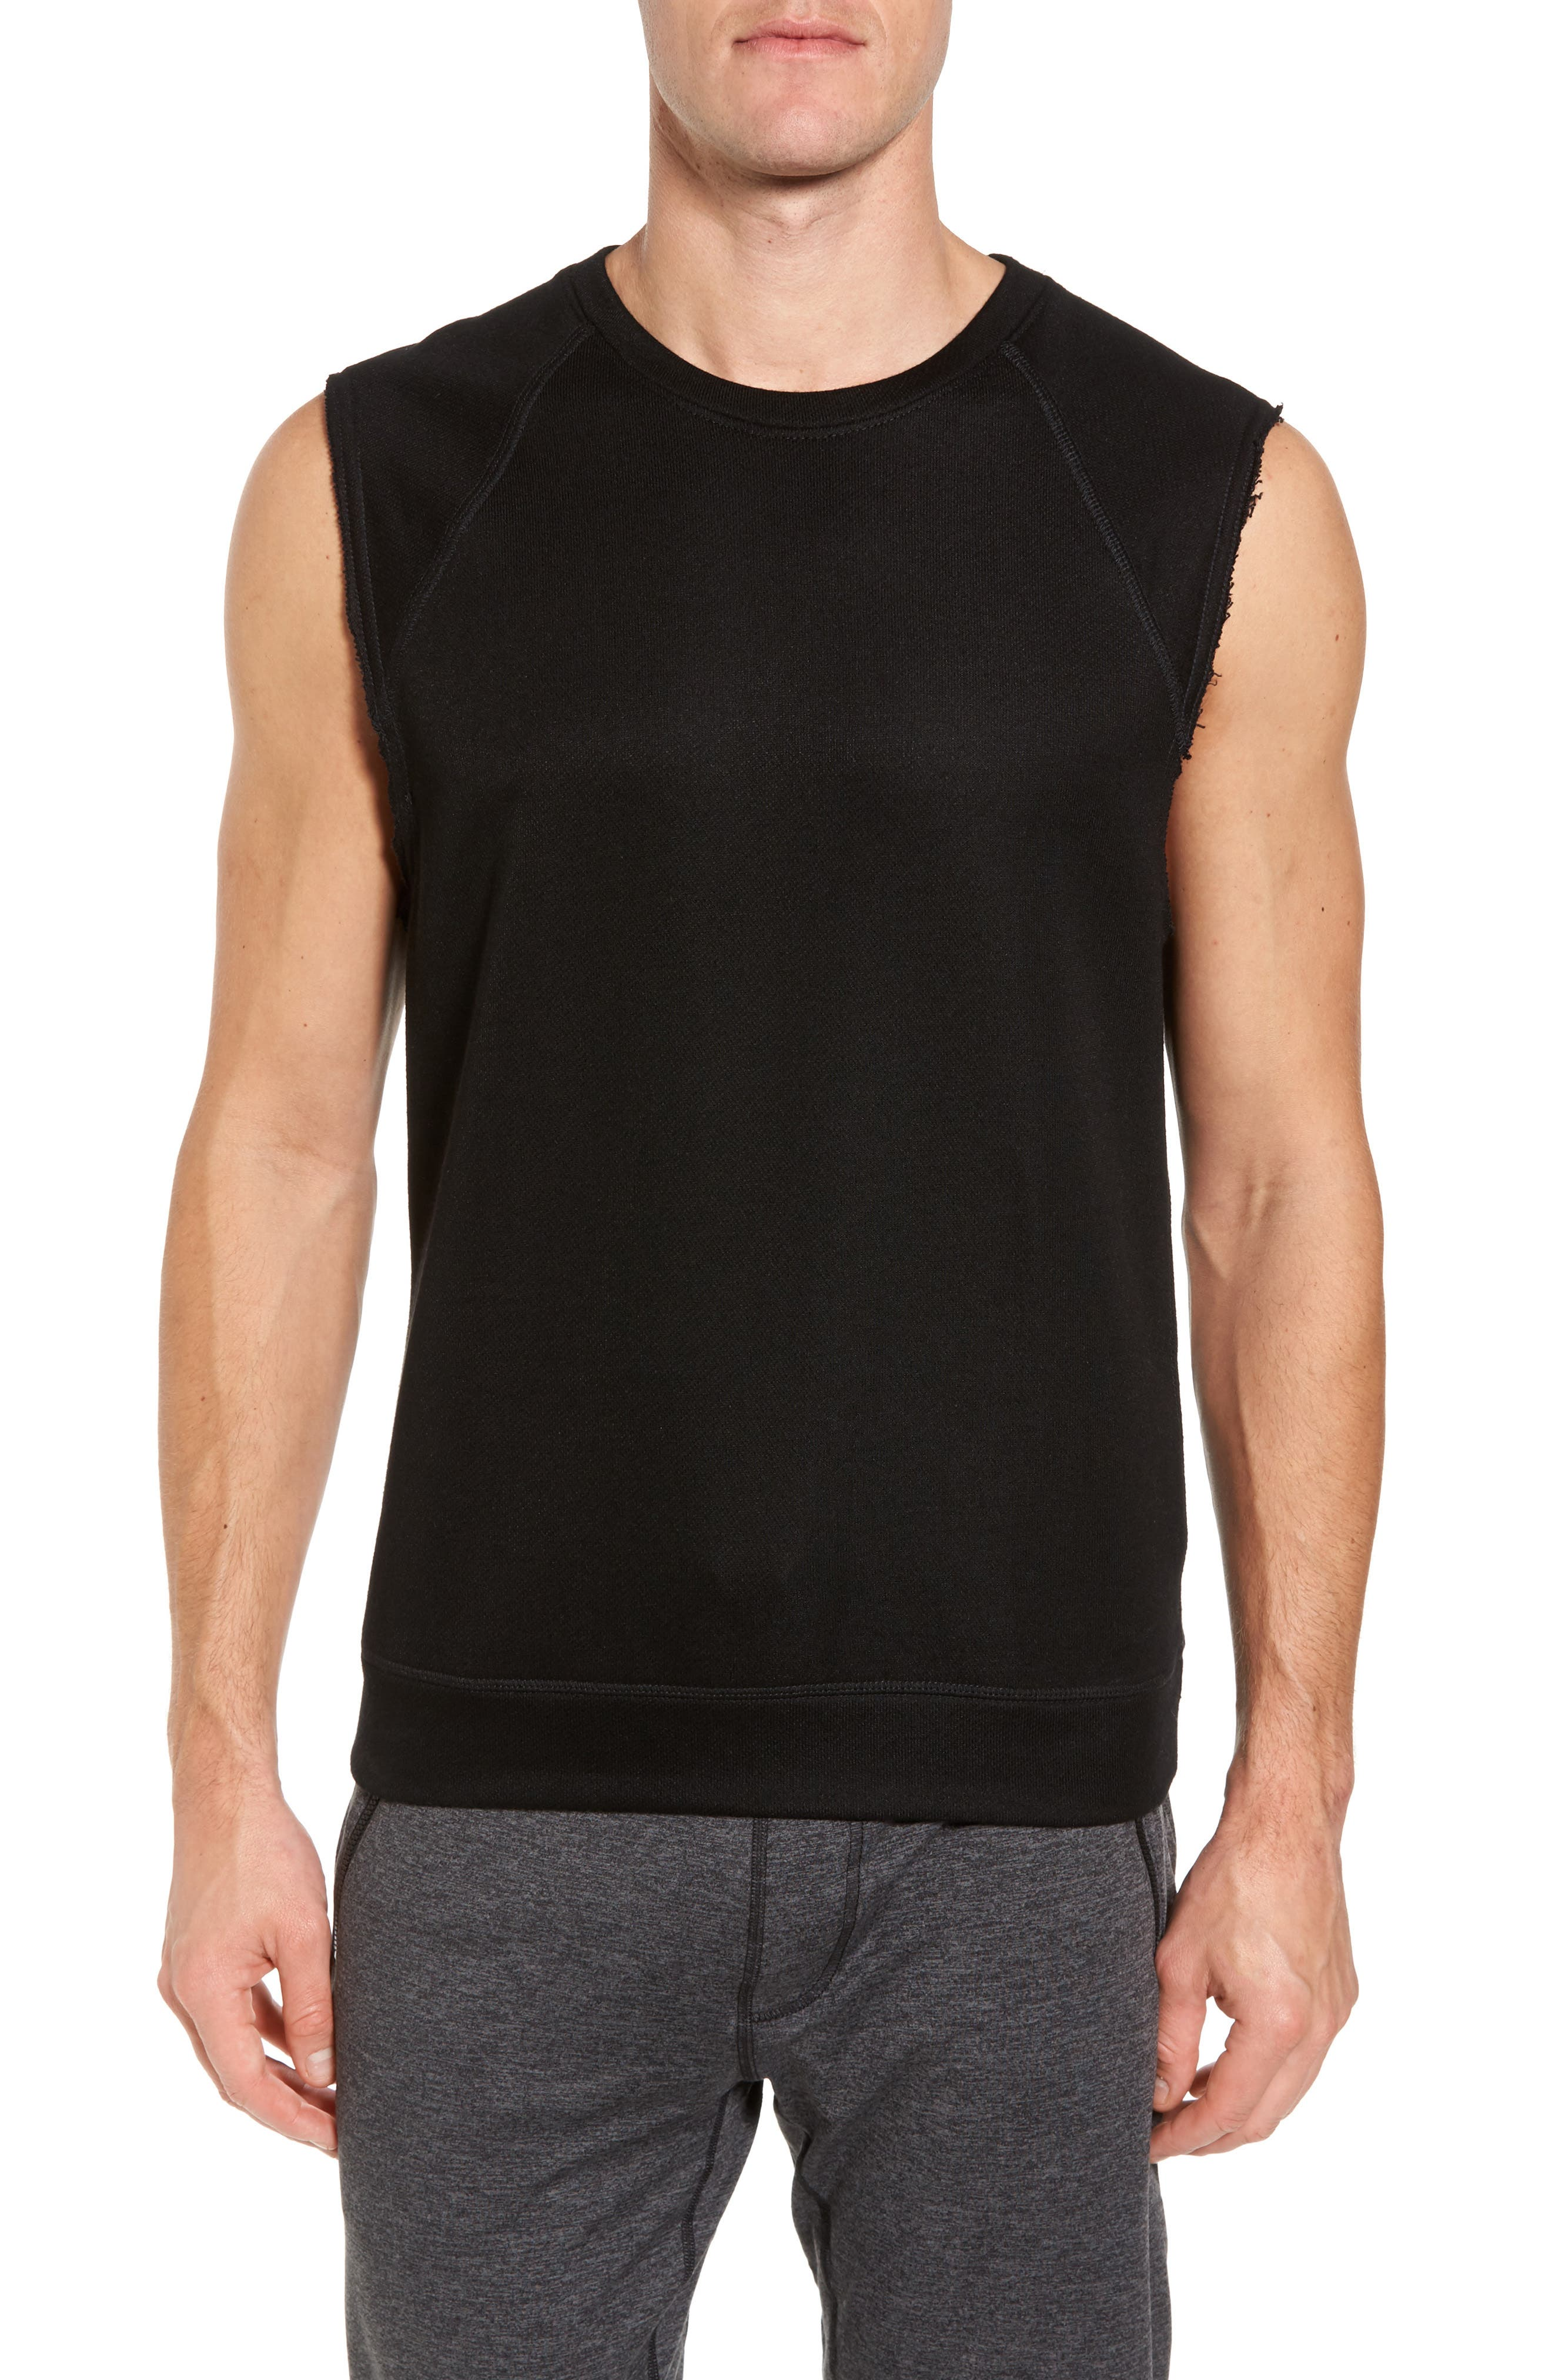 Dosha Relaxed Fit Sweatshirt Tank,                         Main,                         color, Black